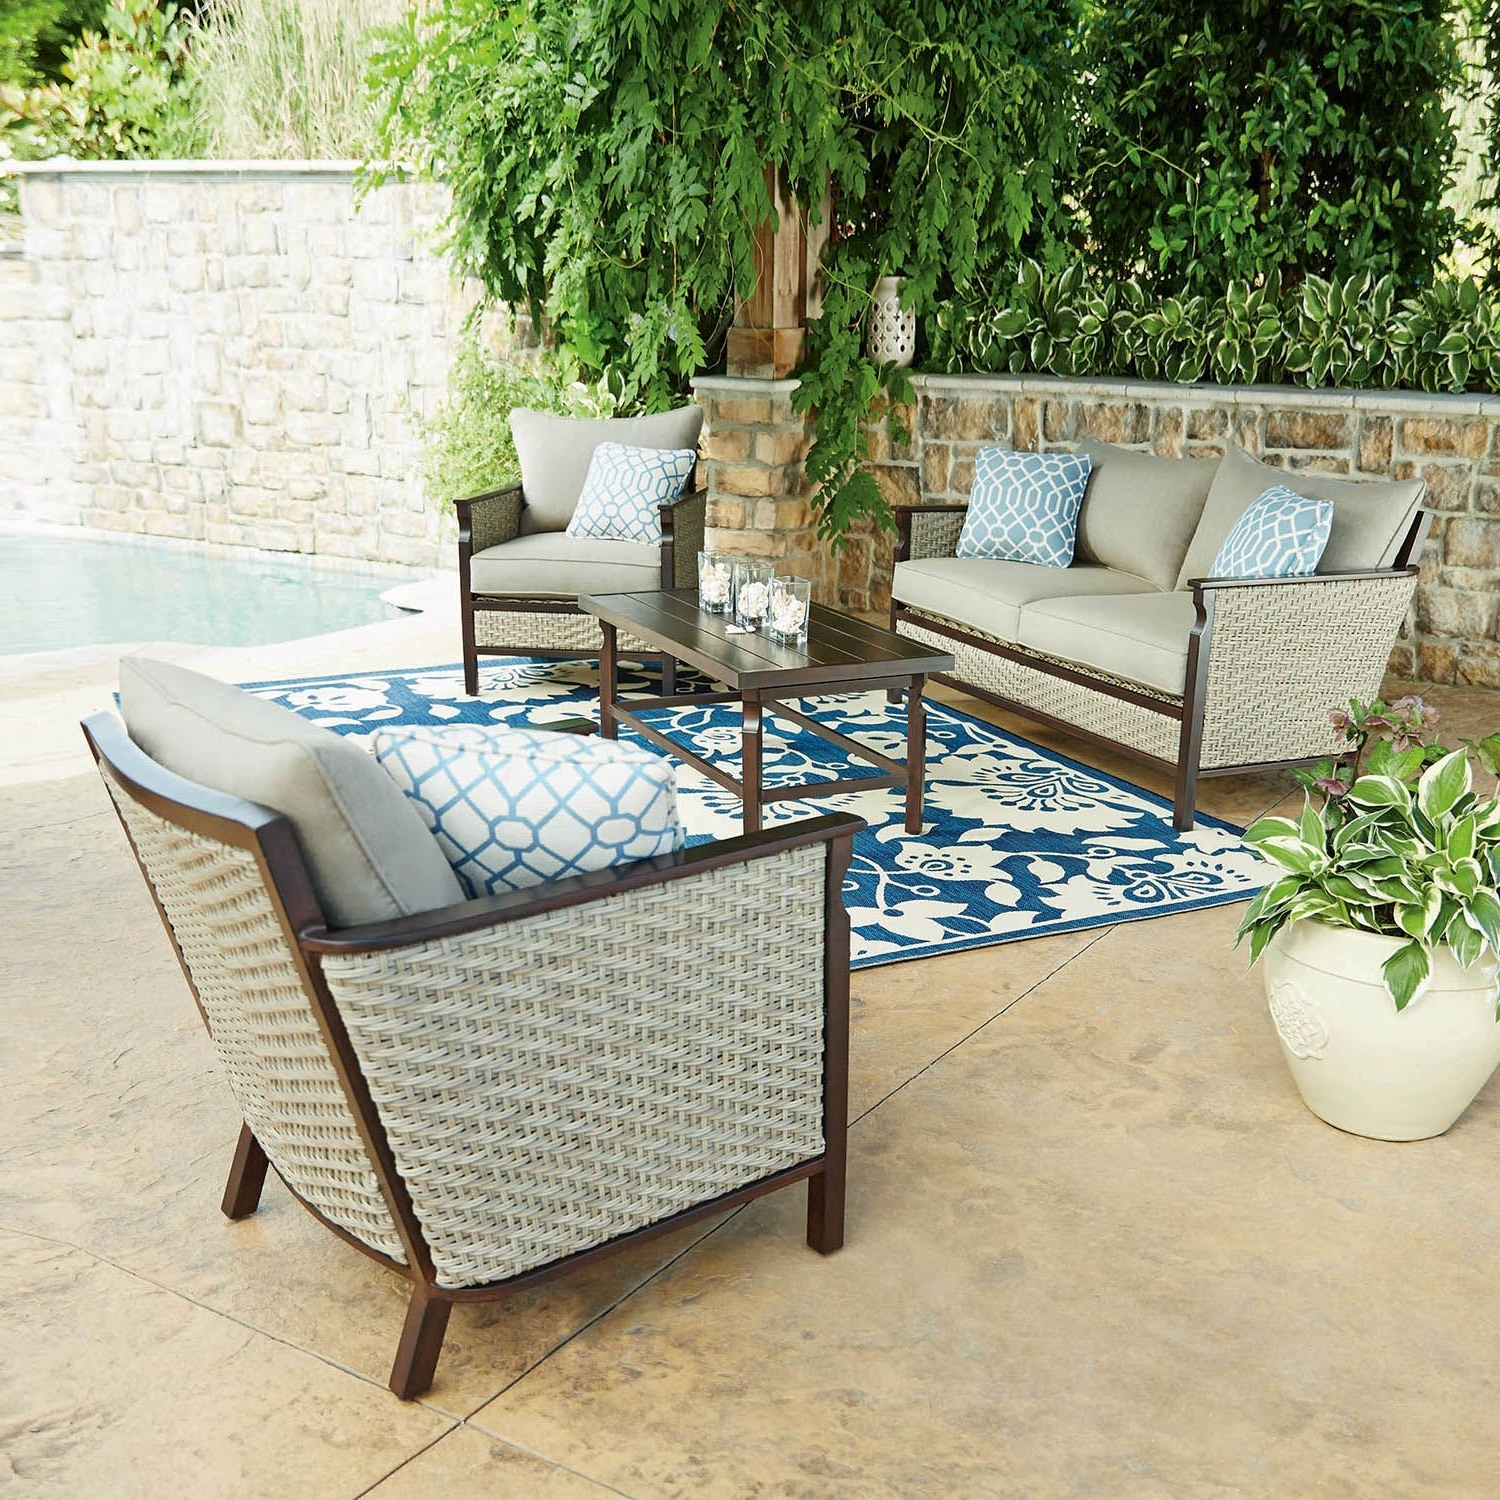 2019 Lounge Chair Ideas ~ Lounge Chair Ideas Sams Club Pool Chairs Patio Within Patio Conversation Sets At Sam's Club (View 9 of 20)